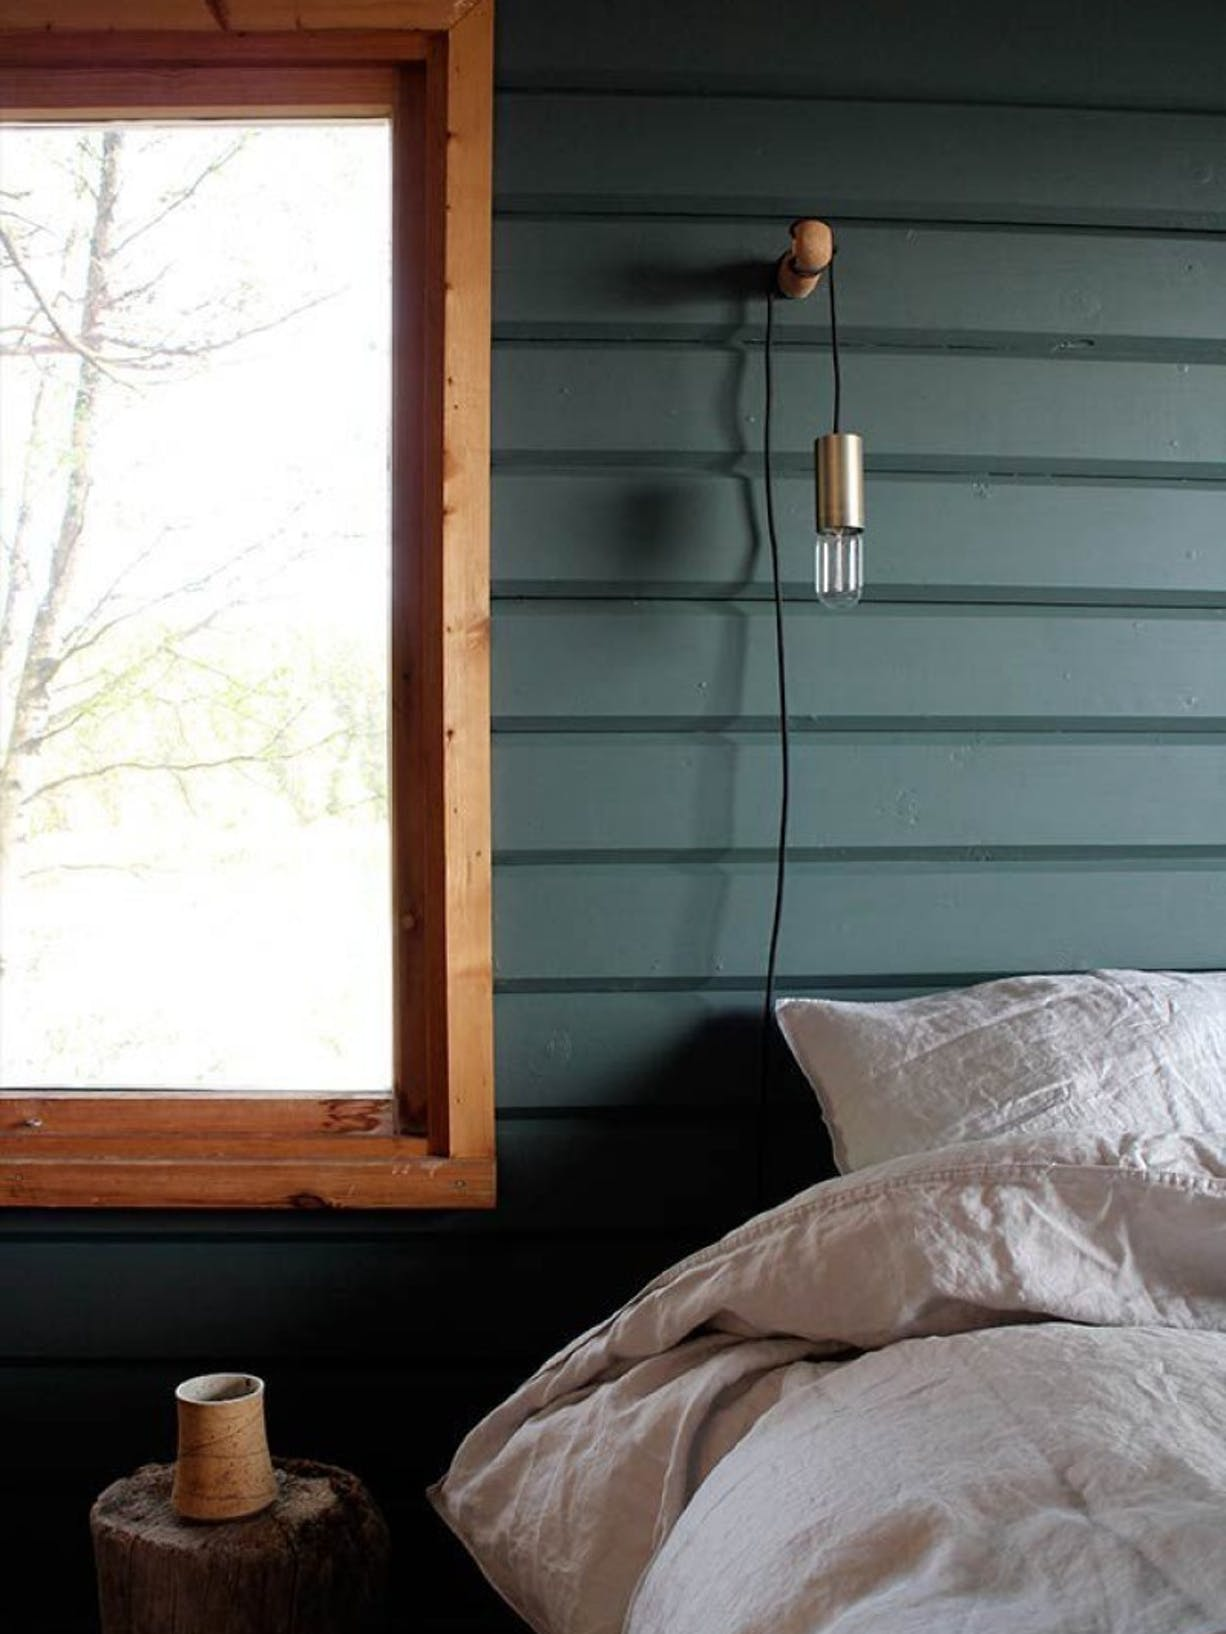 Modern nature: Bringing the outdoors into your bedroom left image